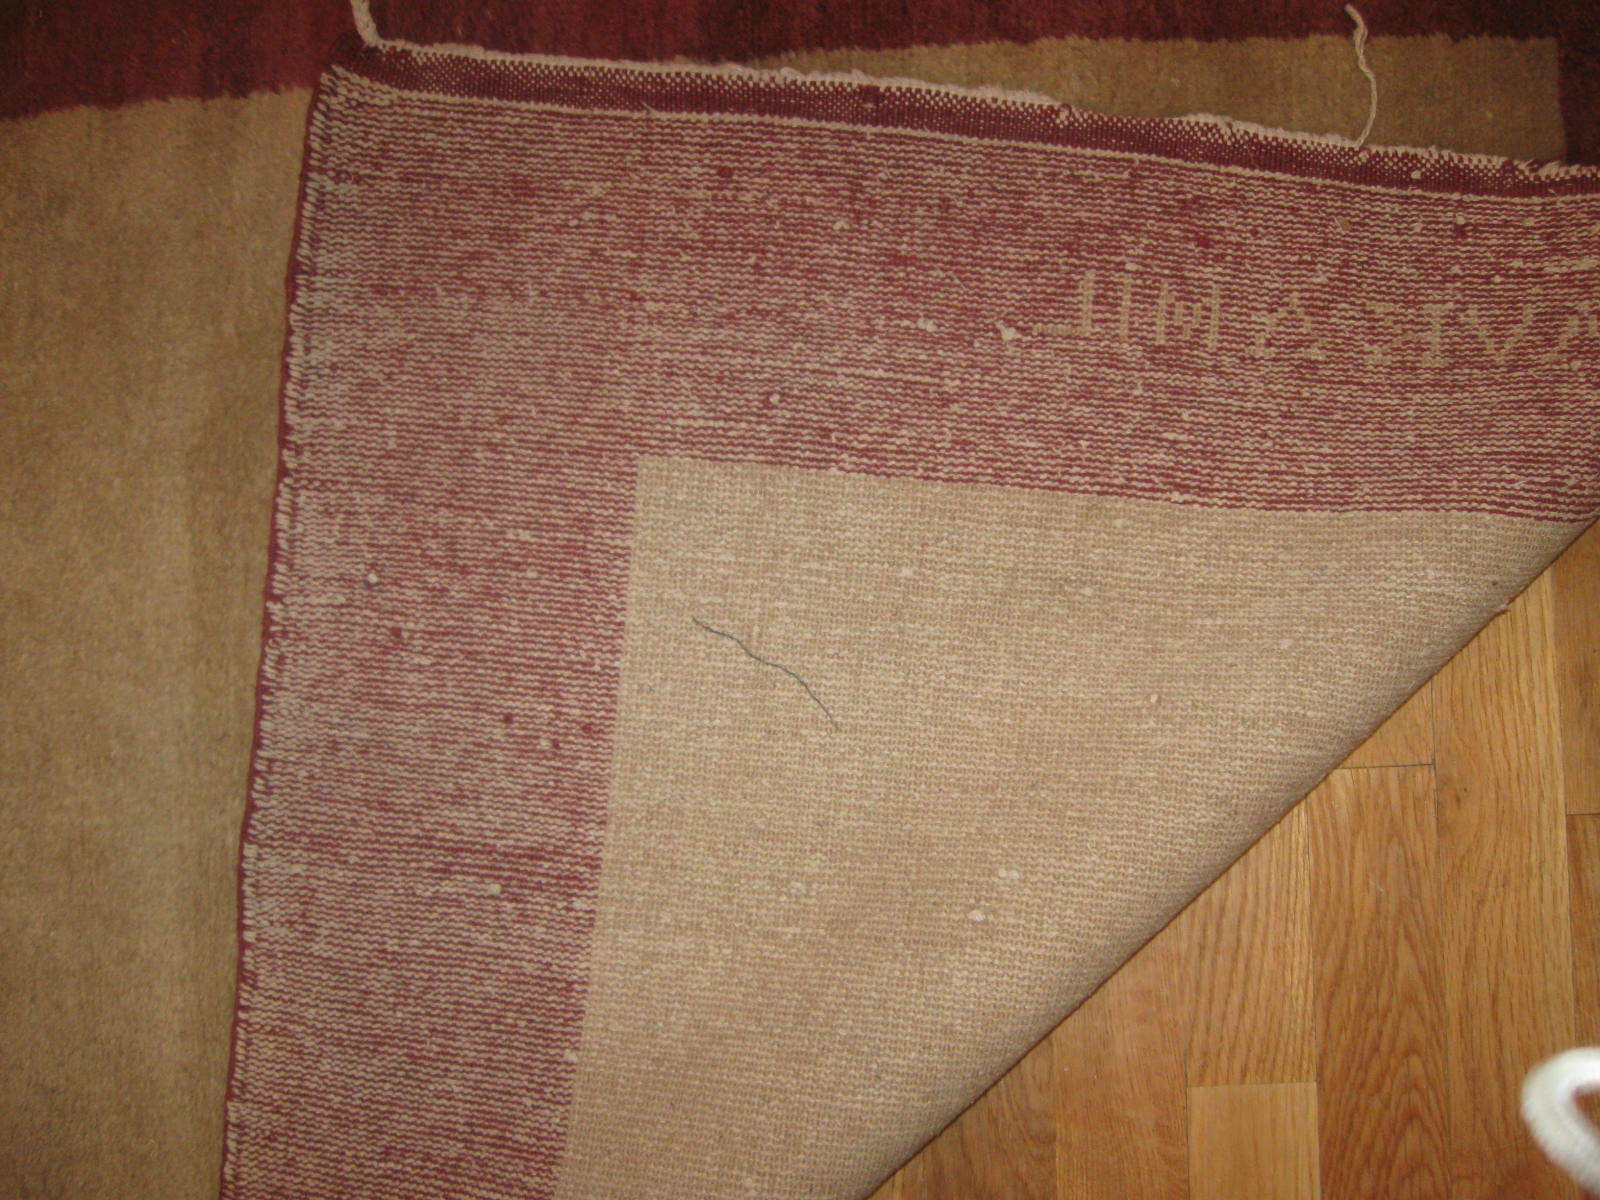 24260 Chinese Fetti hall runner rug 3,3 x 19,6 (1)